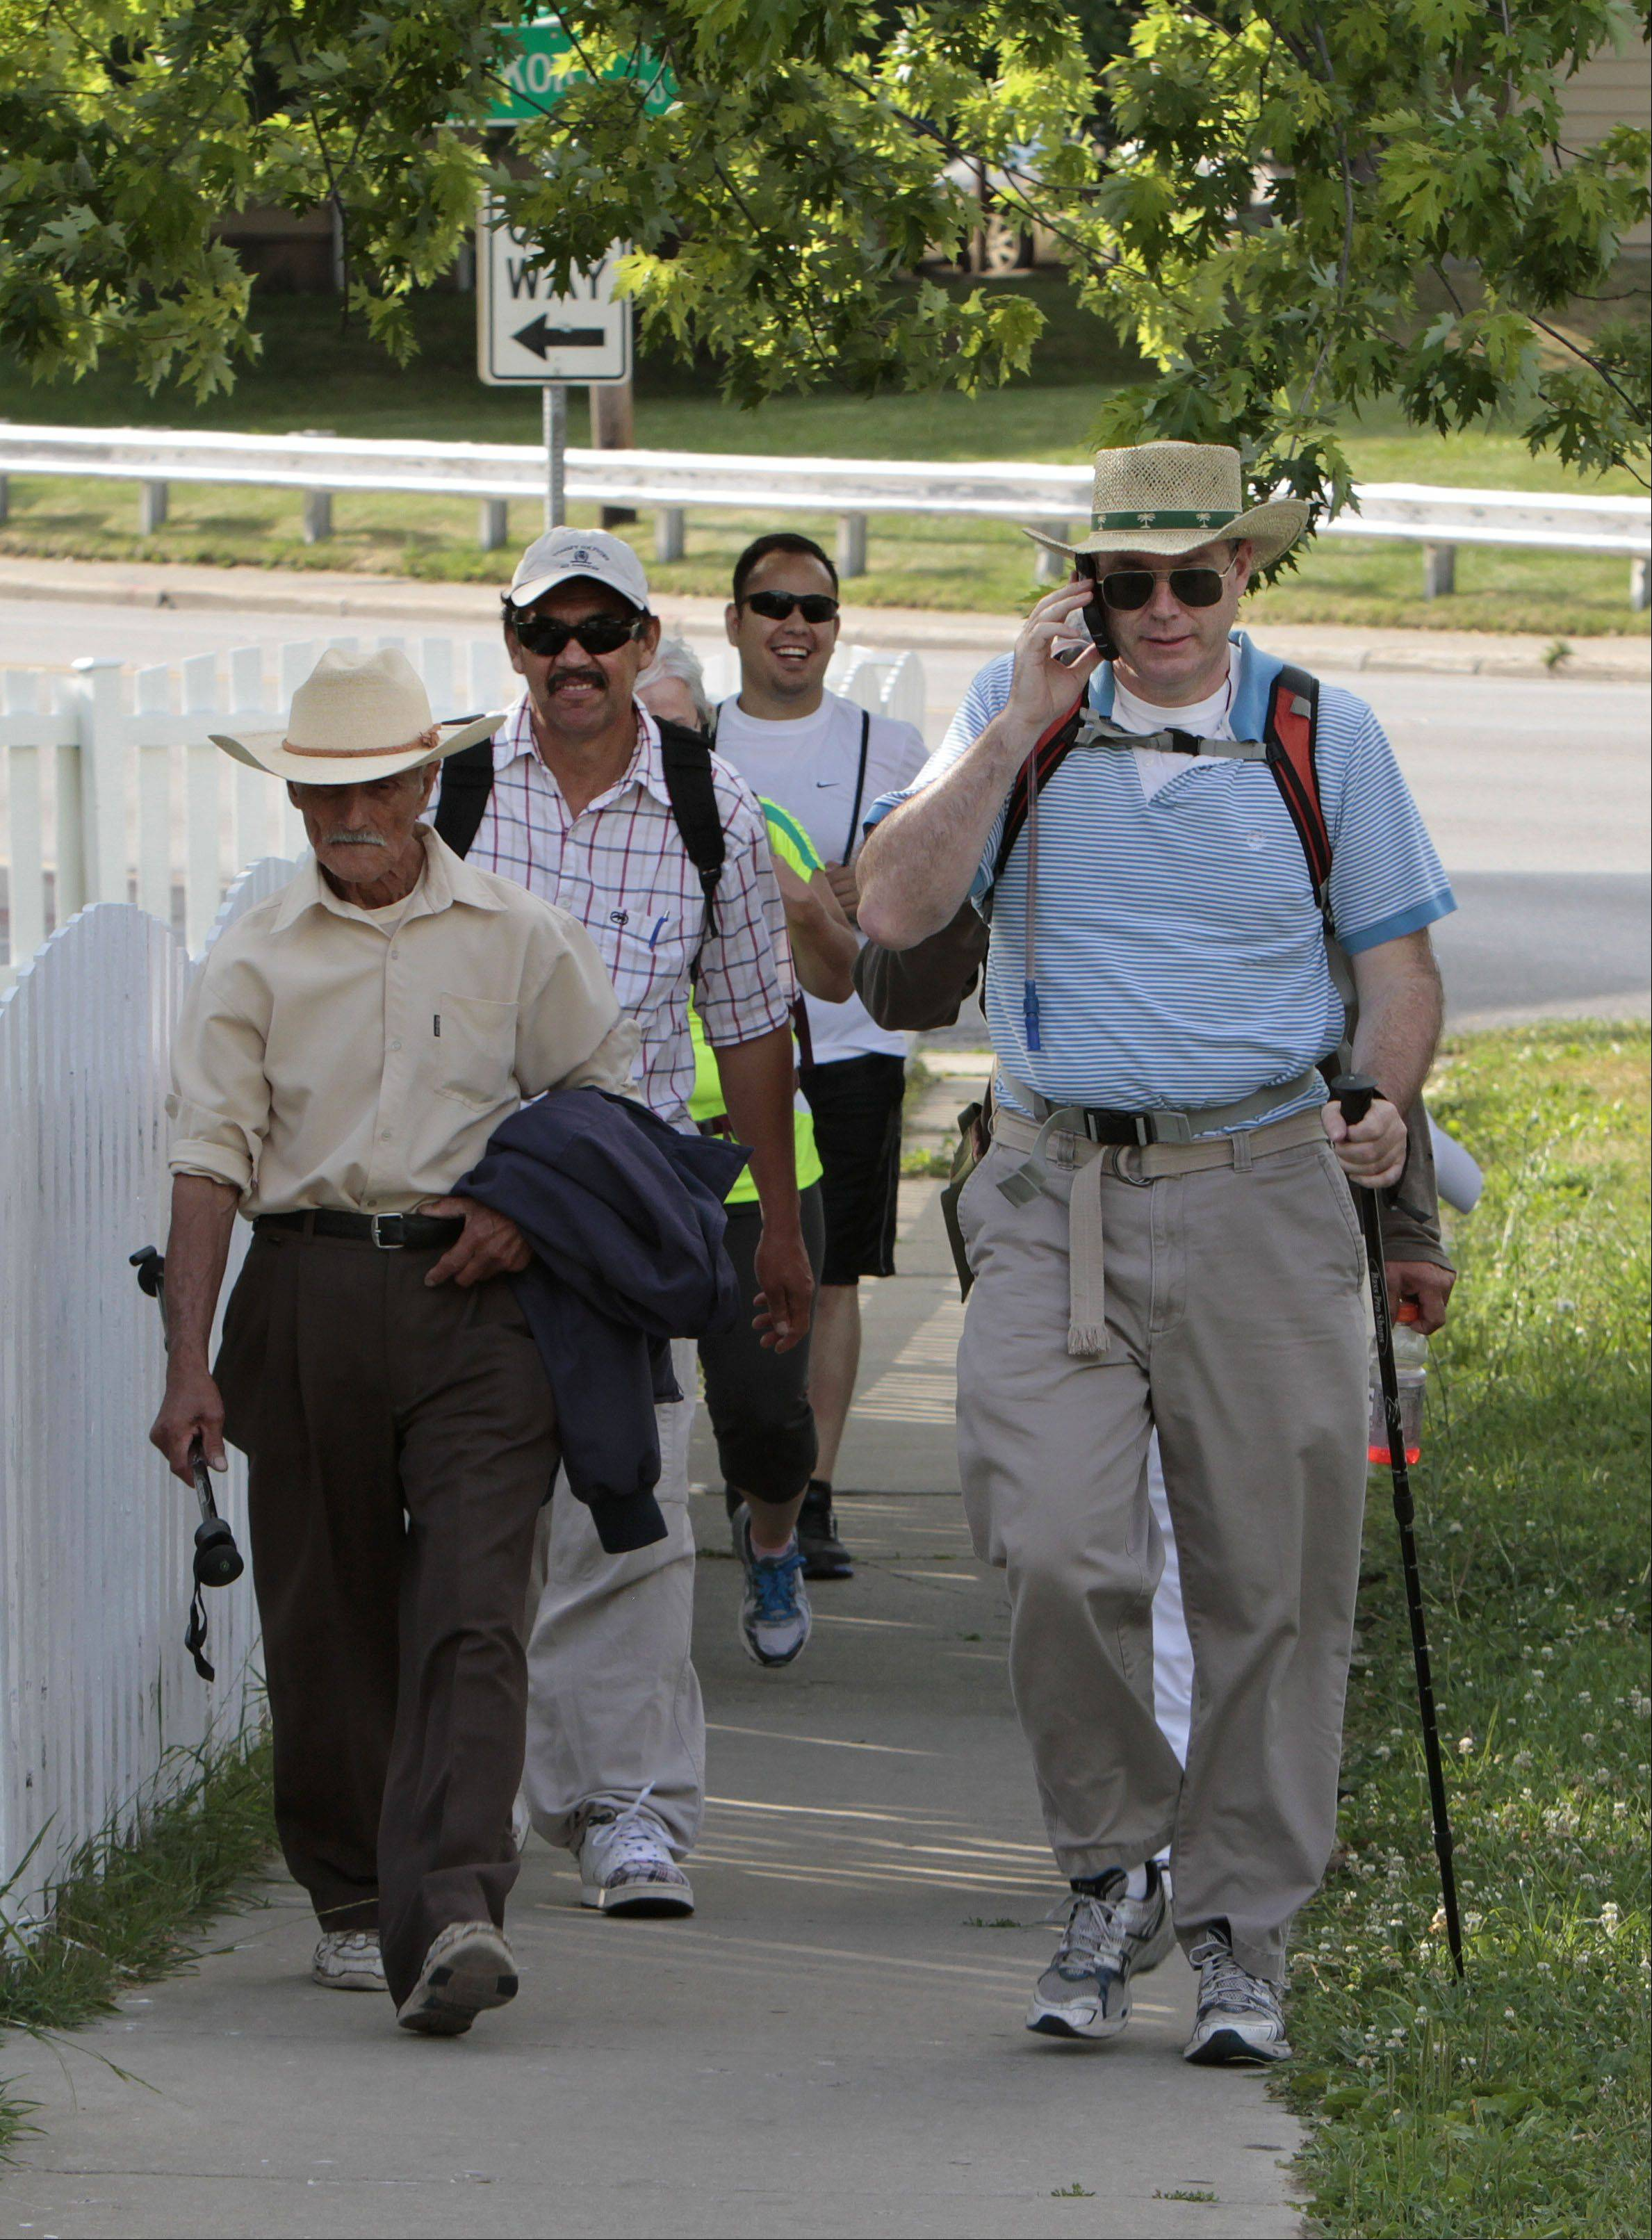 Rev. Timothy O'Malley, pastor of St. Joseph Parish in Round Lake, and about 12 companions start a 168-mile pilgrimage from Immaculate Conception Church in Waukegan to Our Lady of Good Help Shrine in Champion, Wis. They plan to arrive at the shrine on June 27 and average 25 to 30 miles per day.